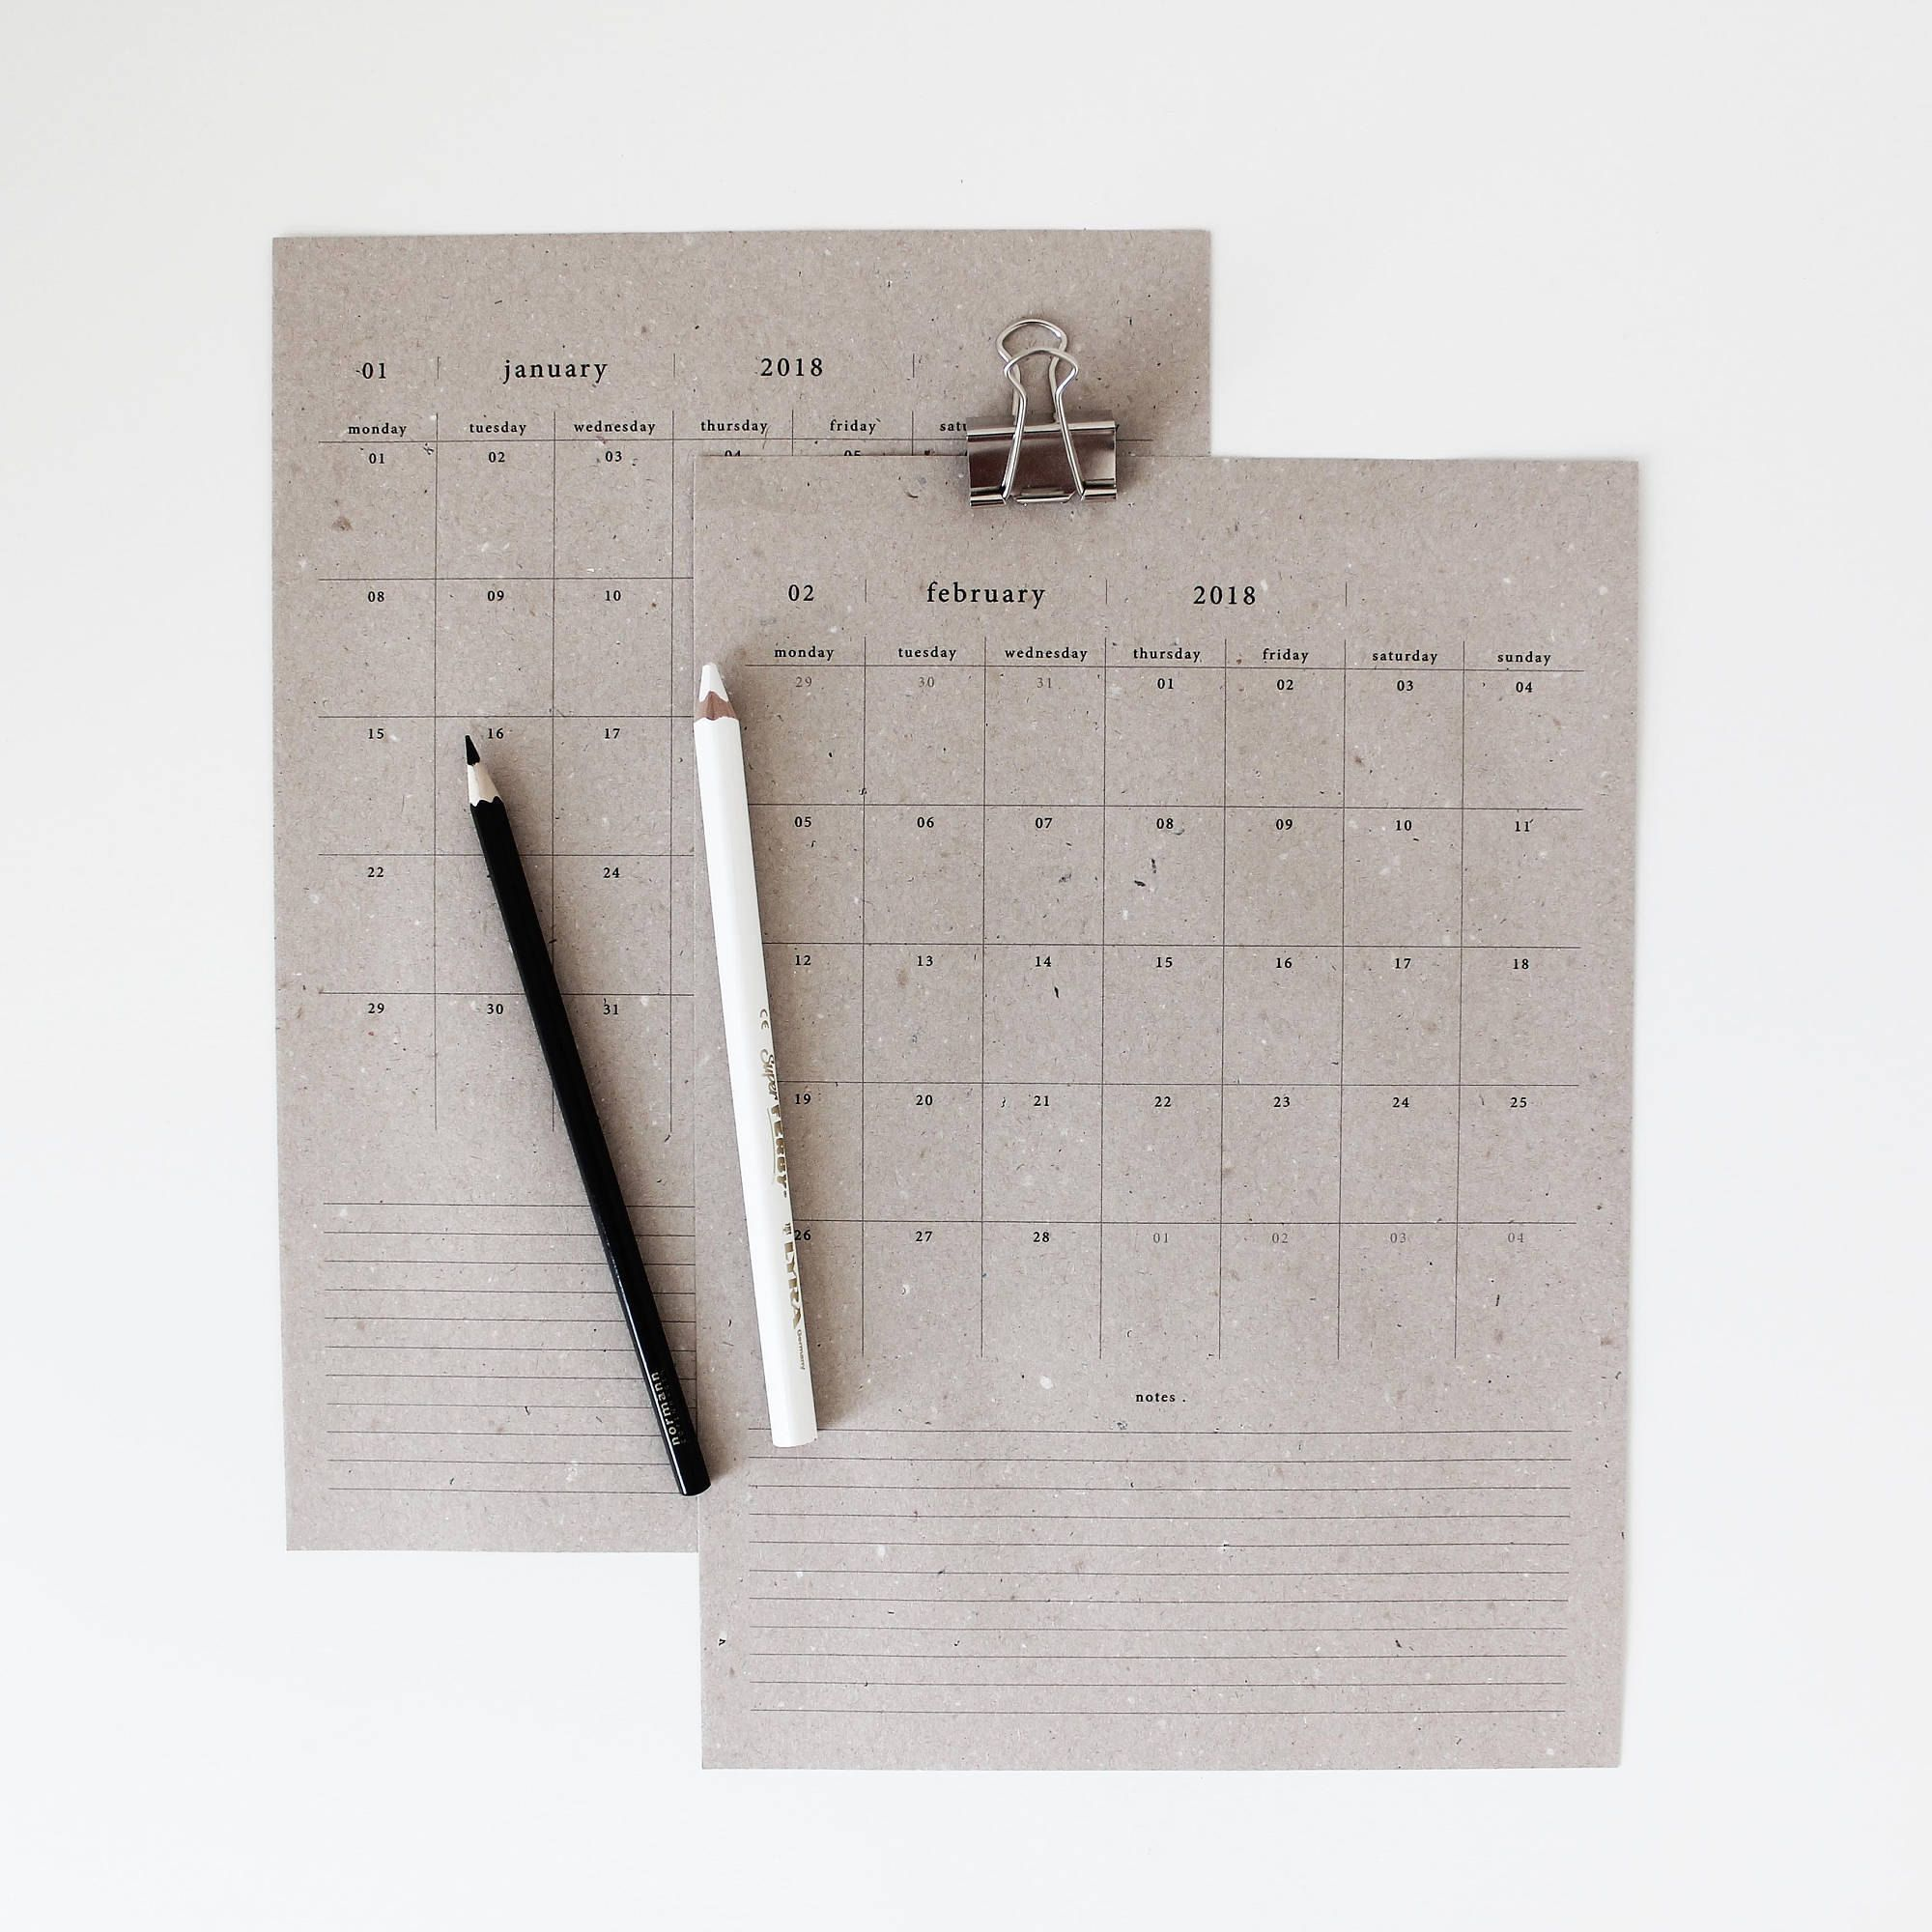 2018 recycled medium recycled paper calendar with notes 2018